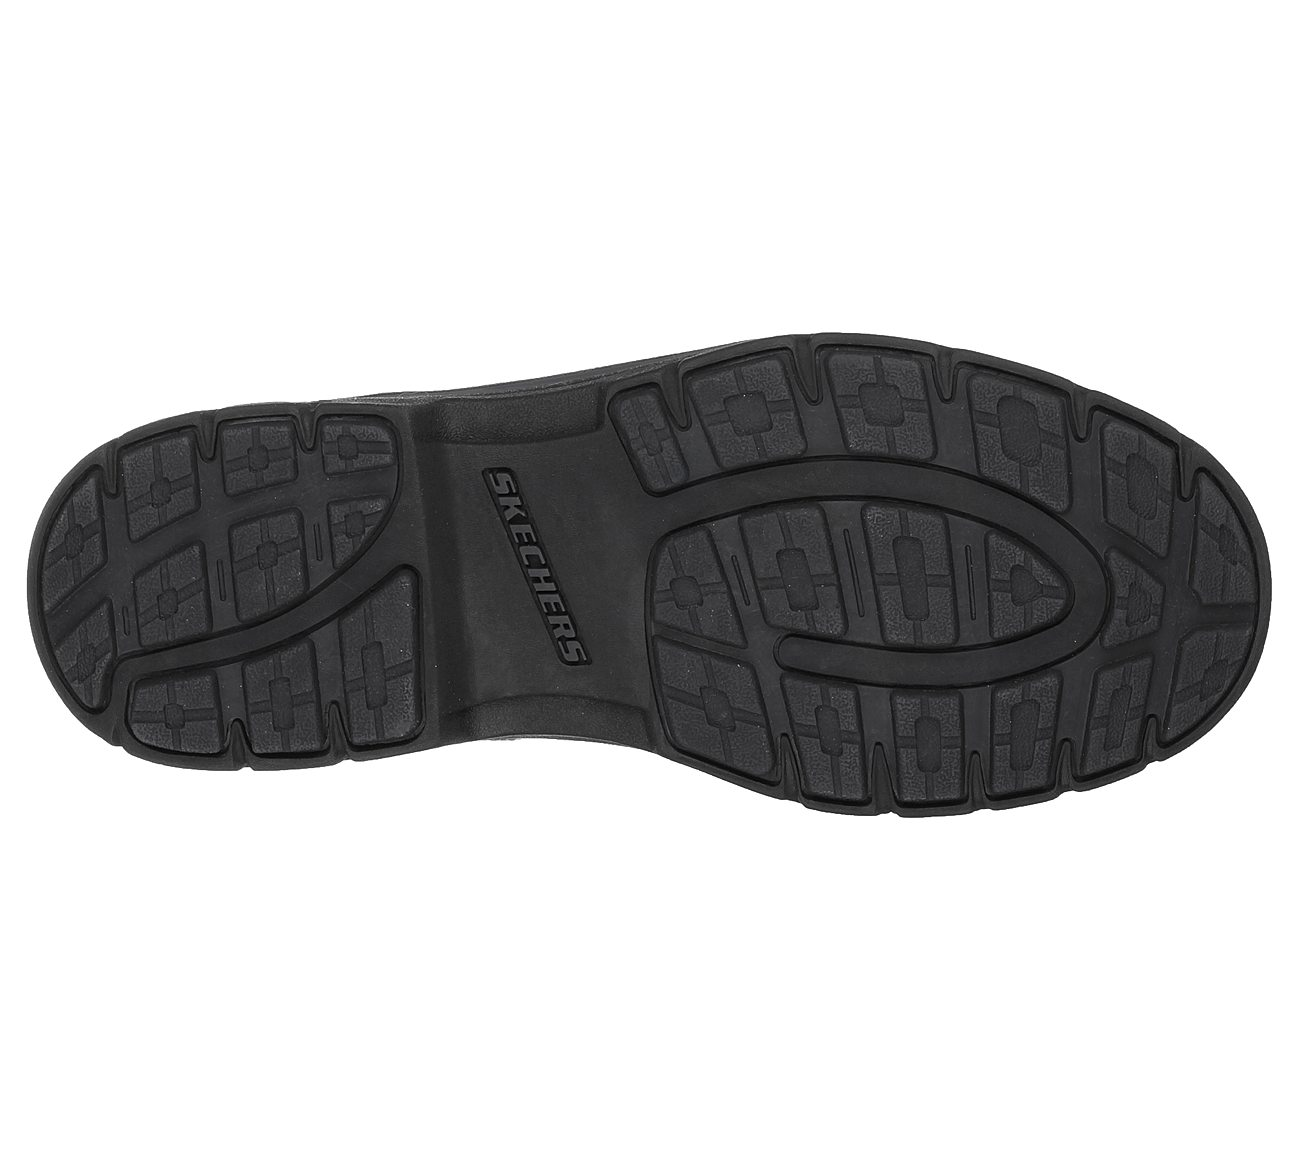 2017 Urban Skechers On The GO Glide Response Slip On BlackWhite